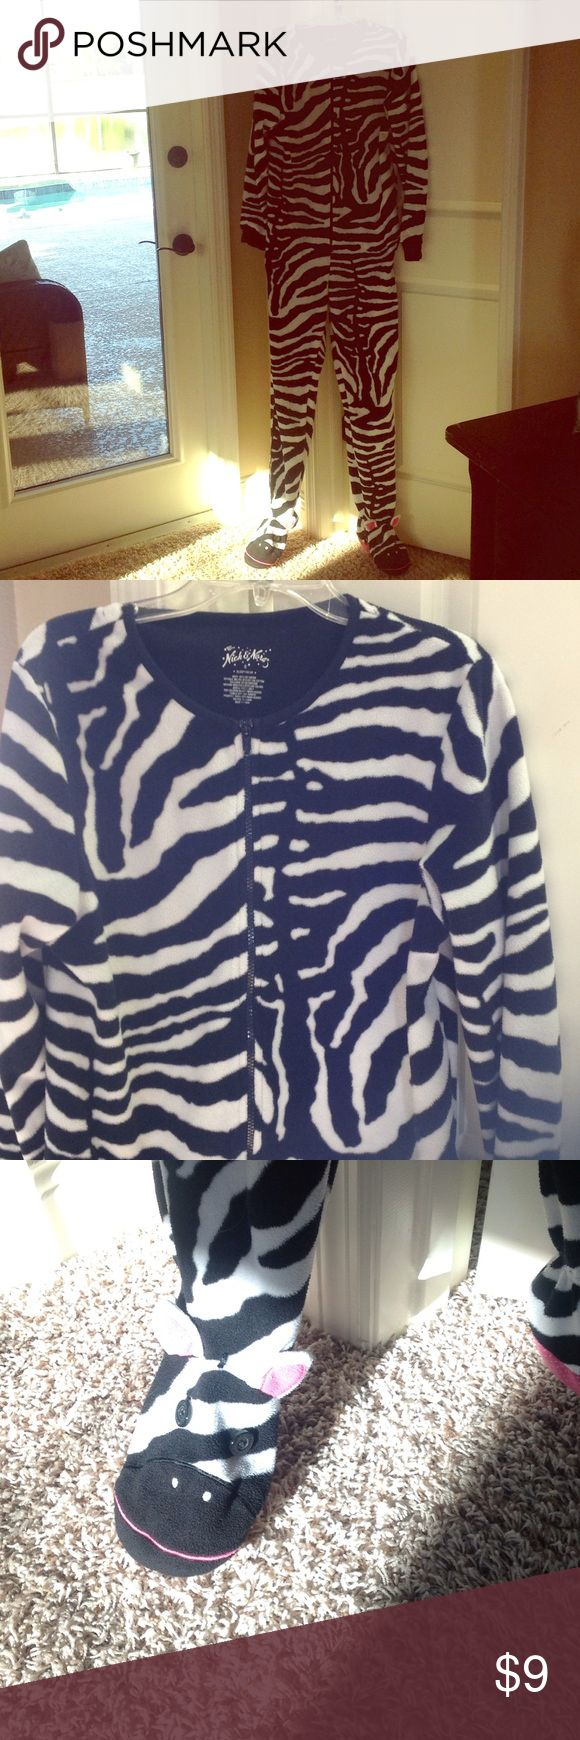 Nick and Nora one piece fleece sleeper, never worn Comfortable, cuddly, fleece. One piece zip up, onesie with zebra face on the feet. By Nick and Nora- good quality product. Size small. Never worn,  but washed (we live in florida 🌴). Nick and Nora Intimates & Sleepwear